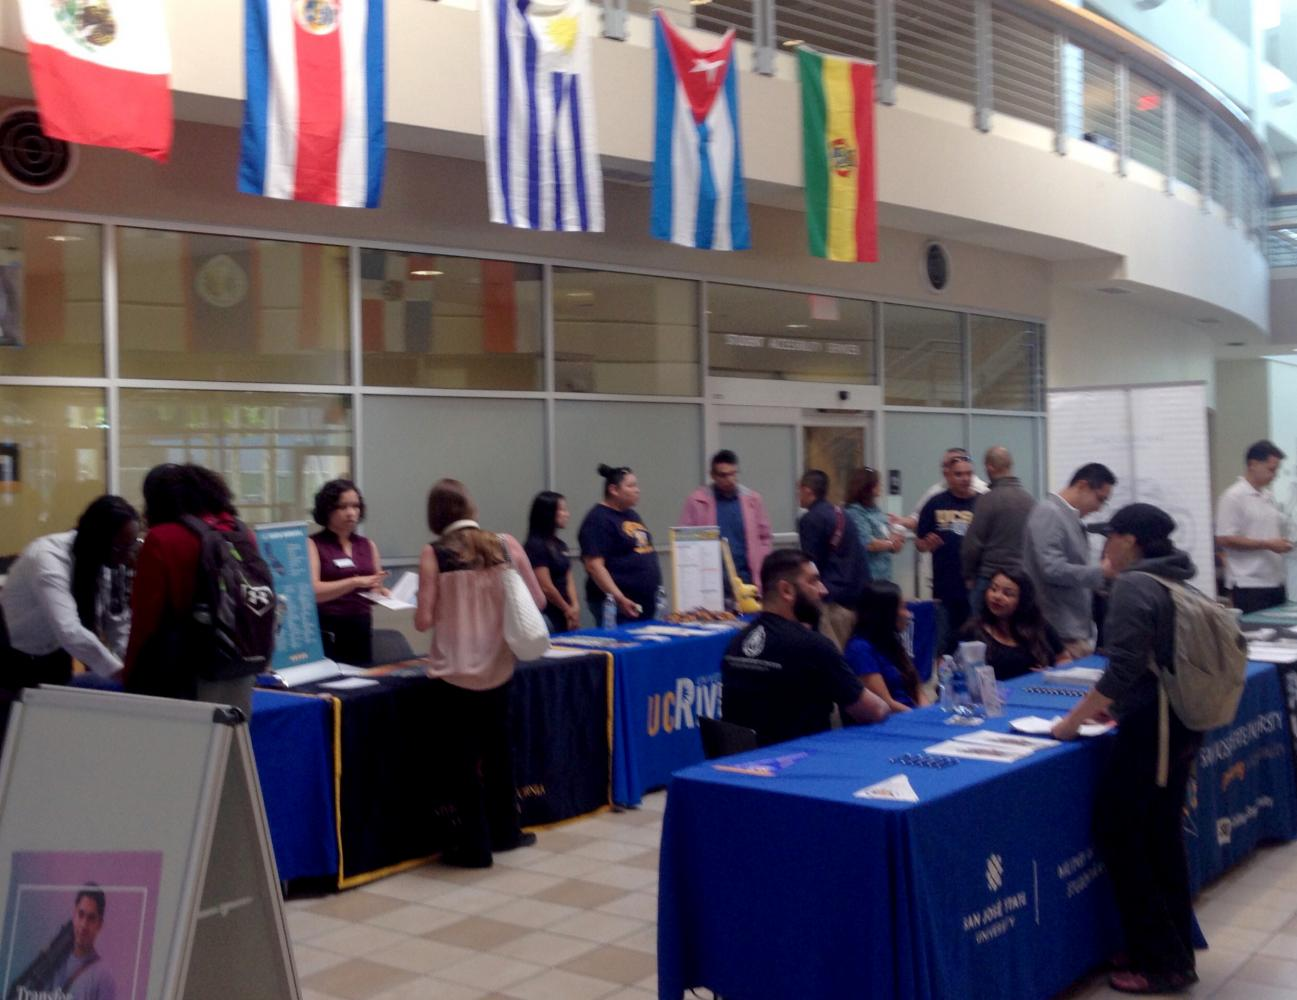 Representatives from universities and colleges lined up to meet students inside the Student Services Center on Oct. 9.